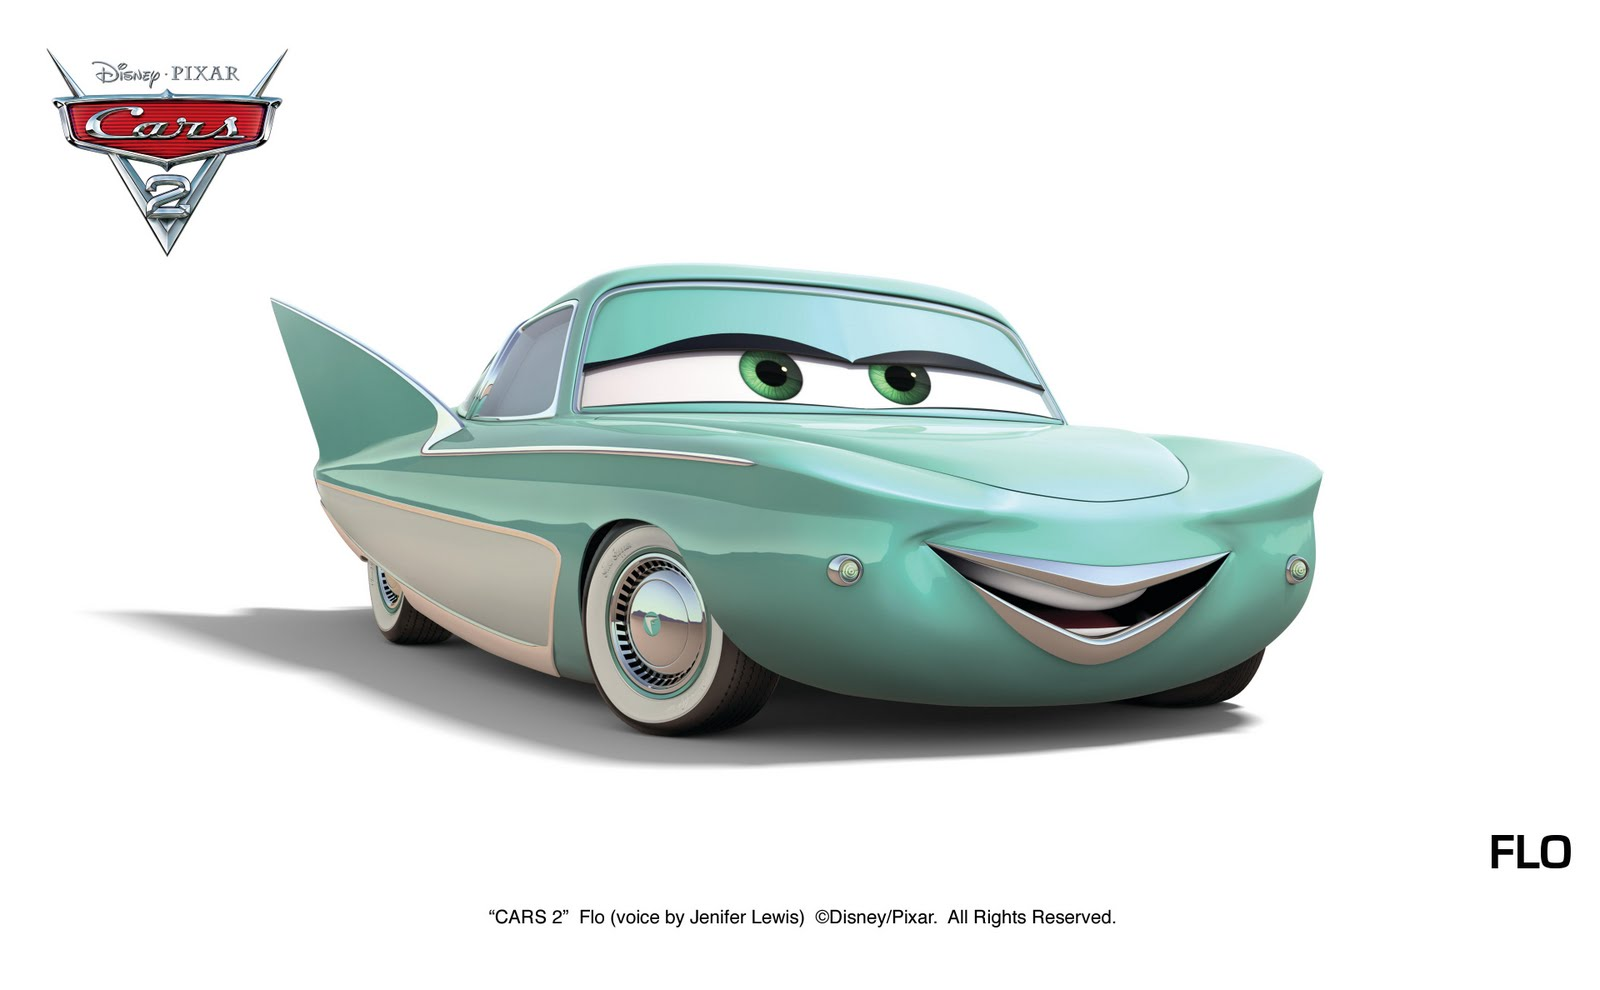 Cars 2 Cartoon Characters Names : Dibujos de cars vlc peque